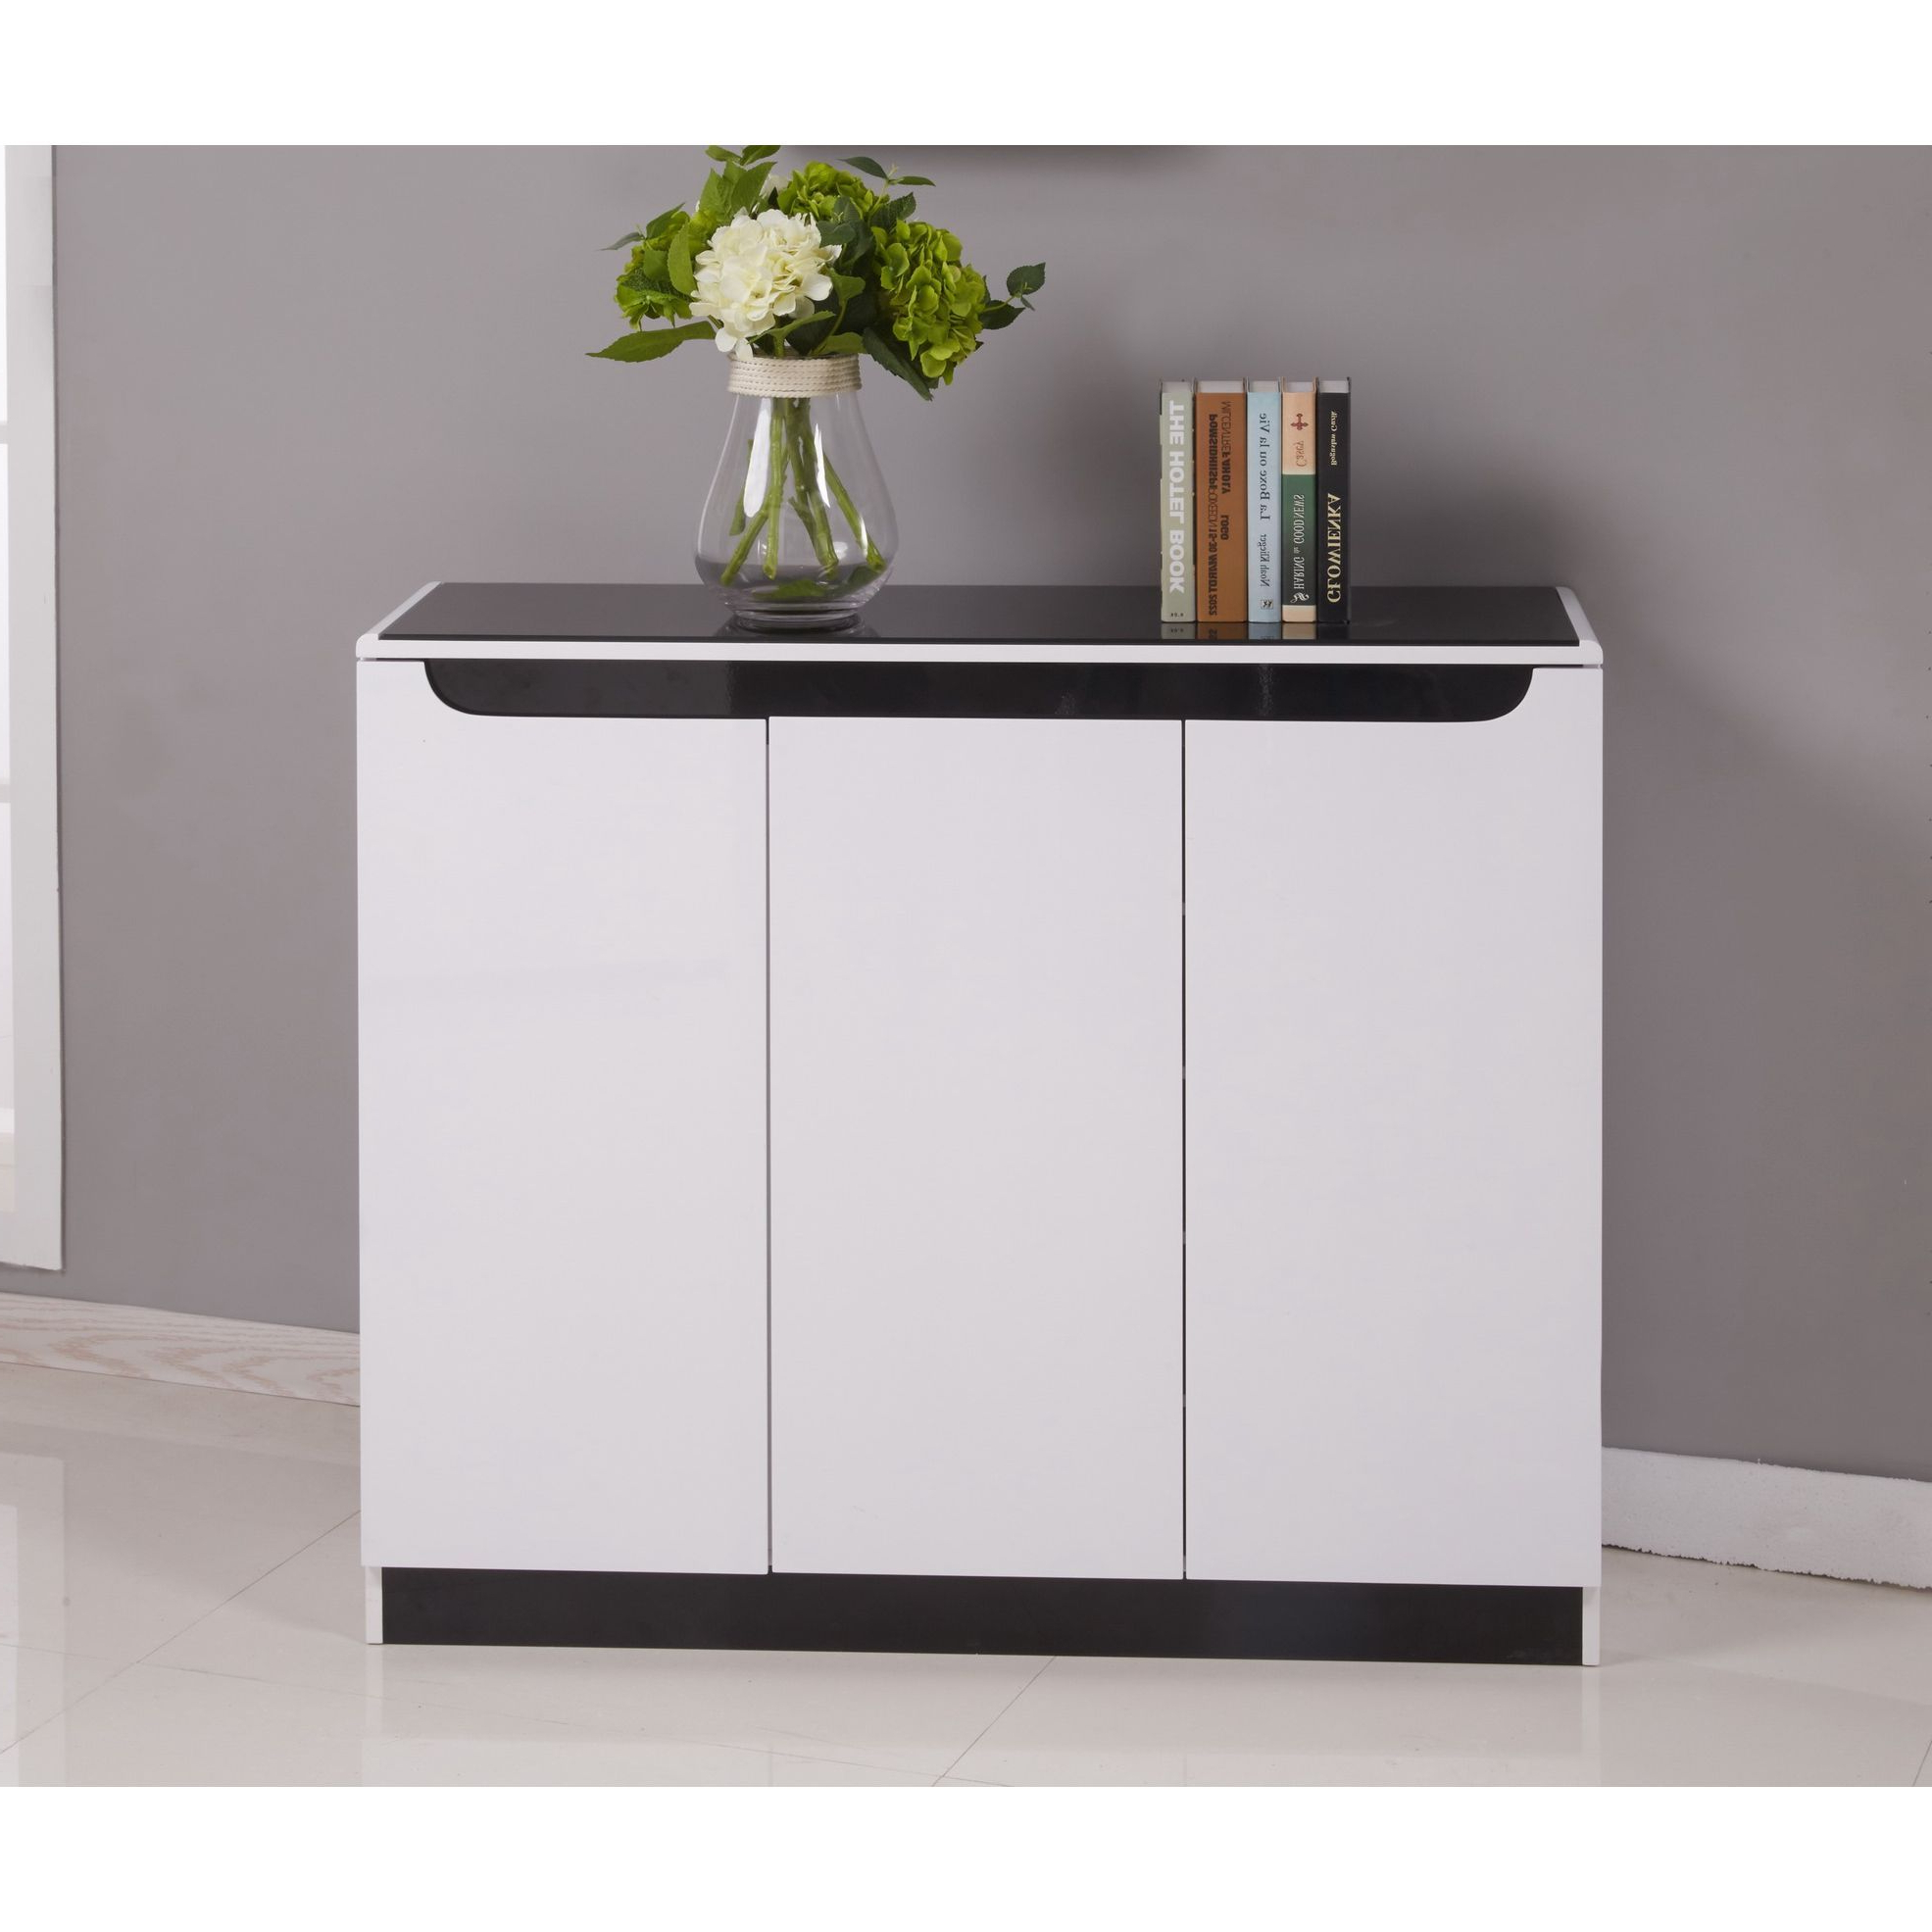 Widely Used Maestro Shoe Cabinet – White High Gloss W/ Black Glass Top (View 16 of 20)